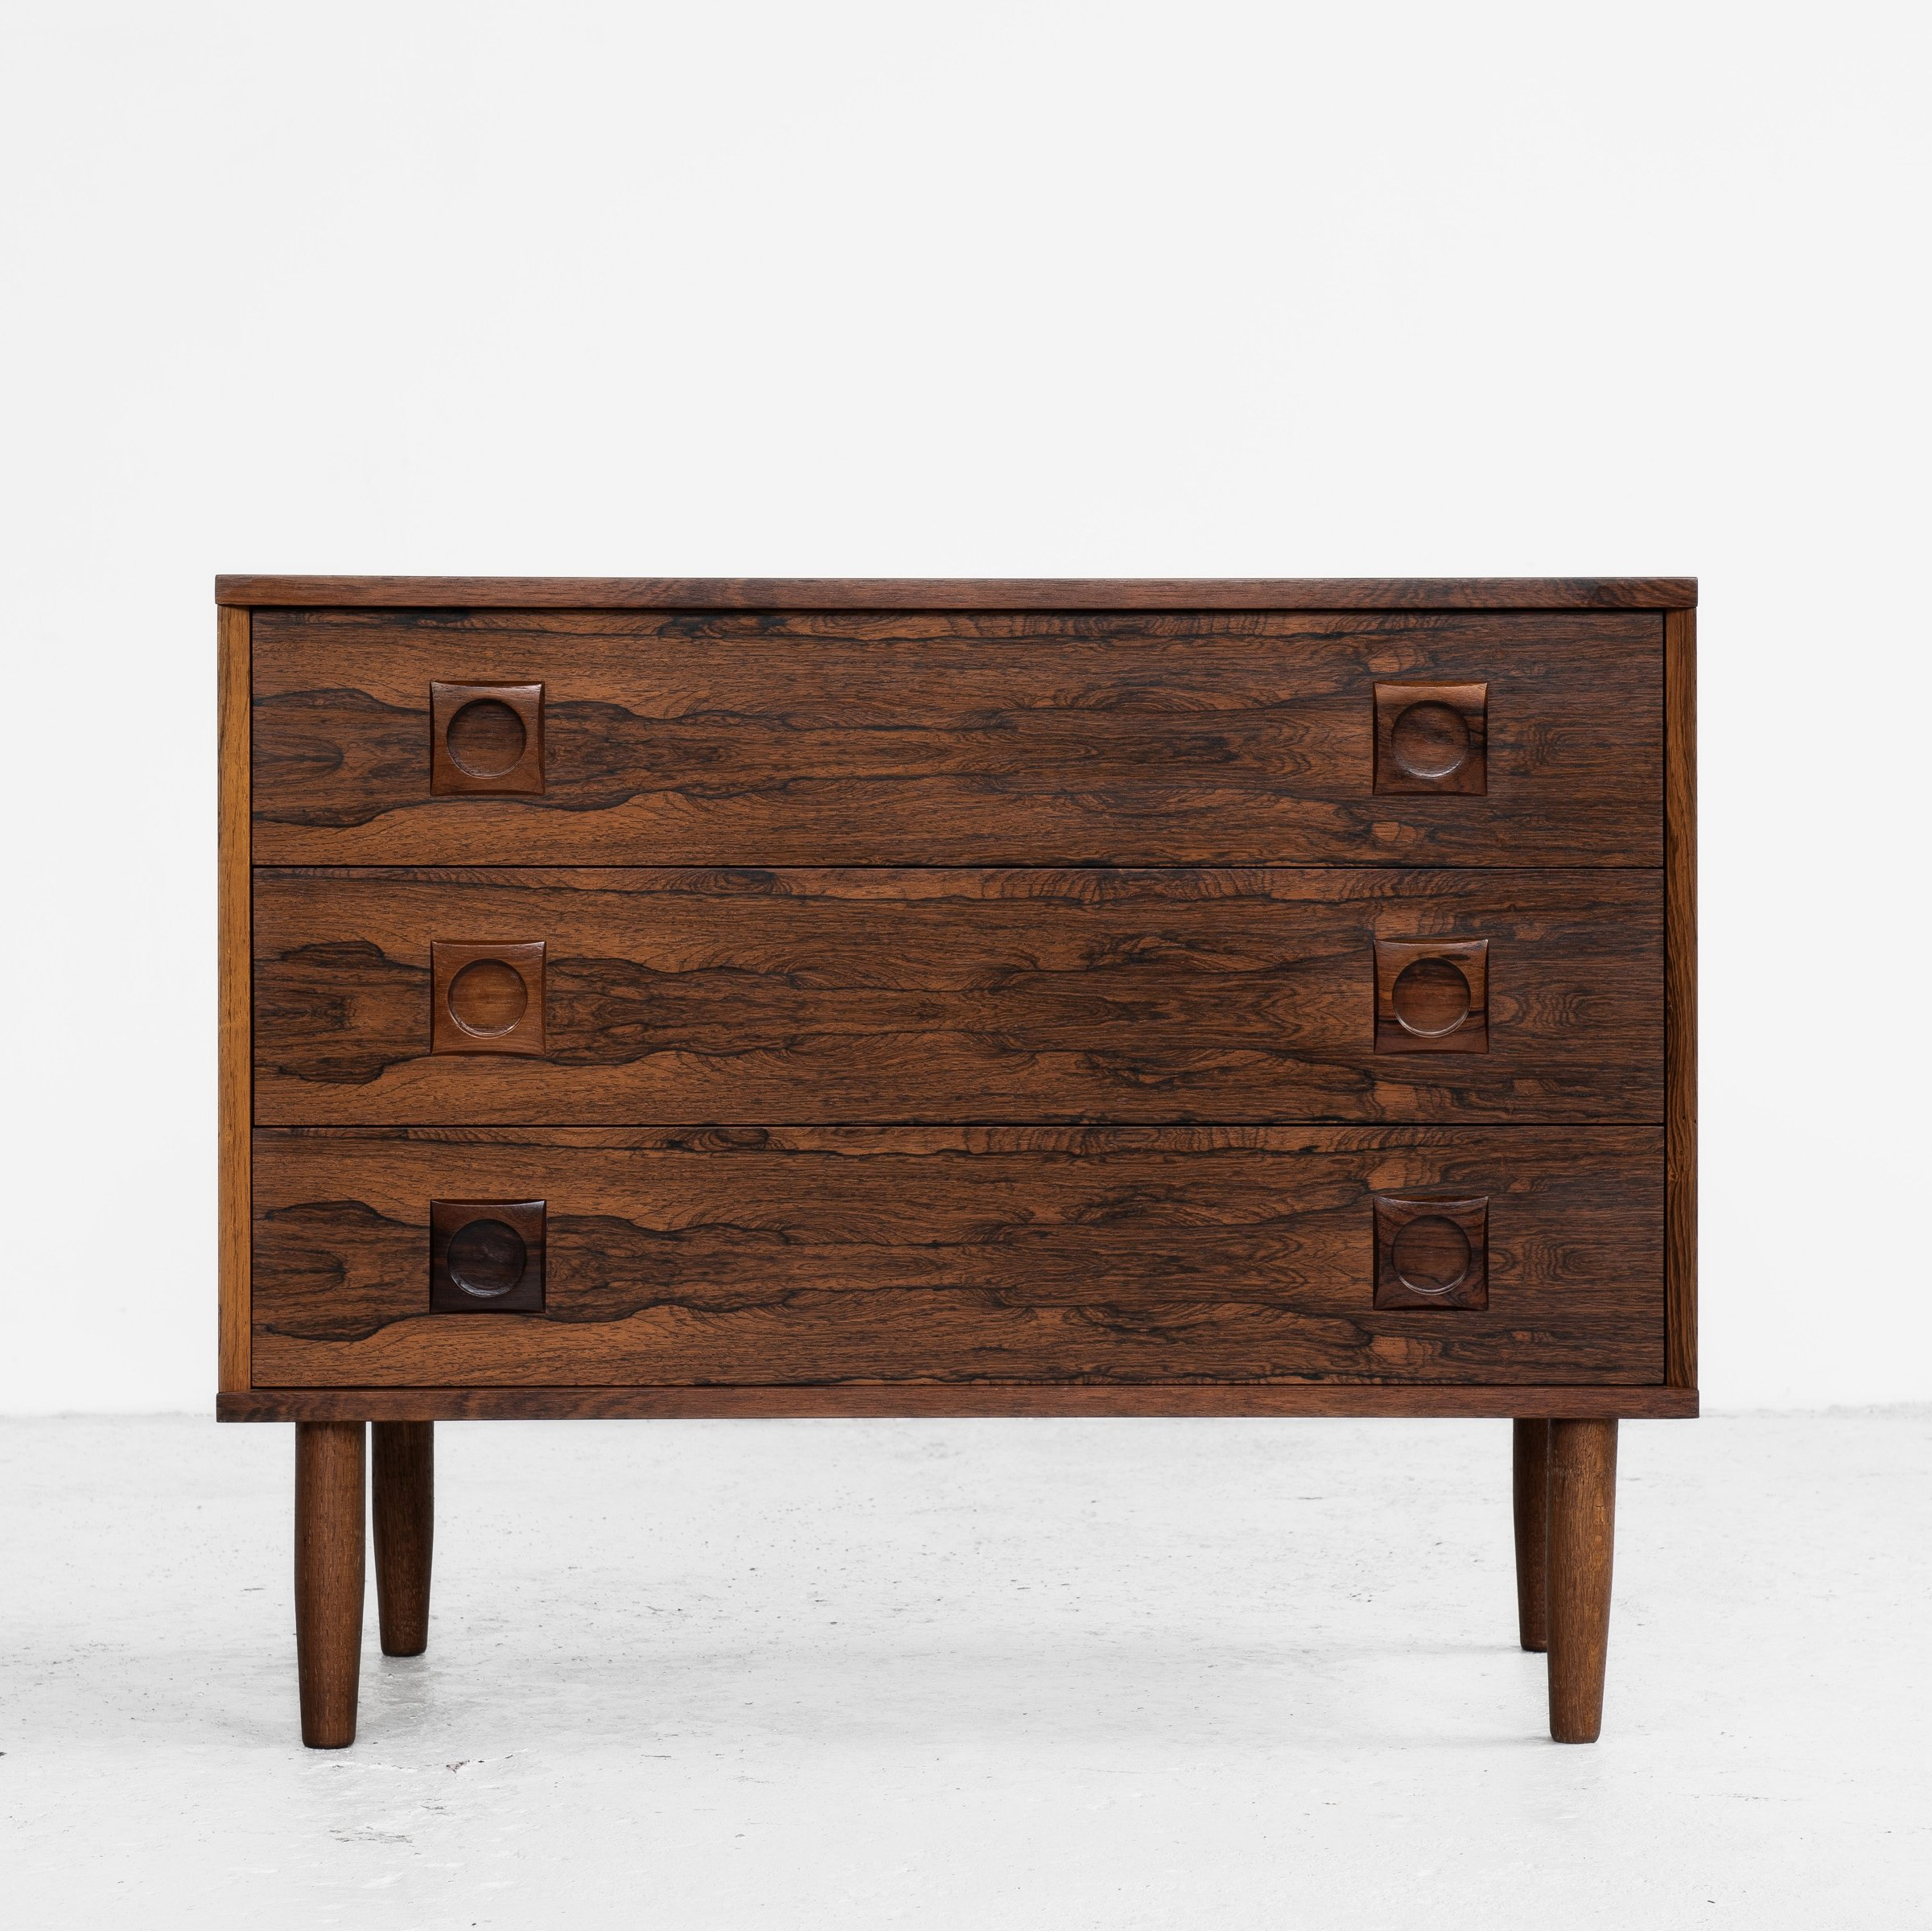 Image of: Midcentury Danish Chest Of 3 Drawers In Rosewood With Round Drawer Handles 131098